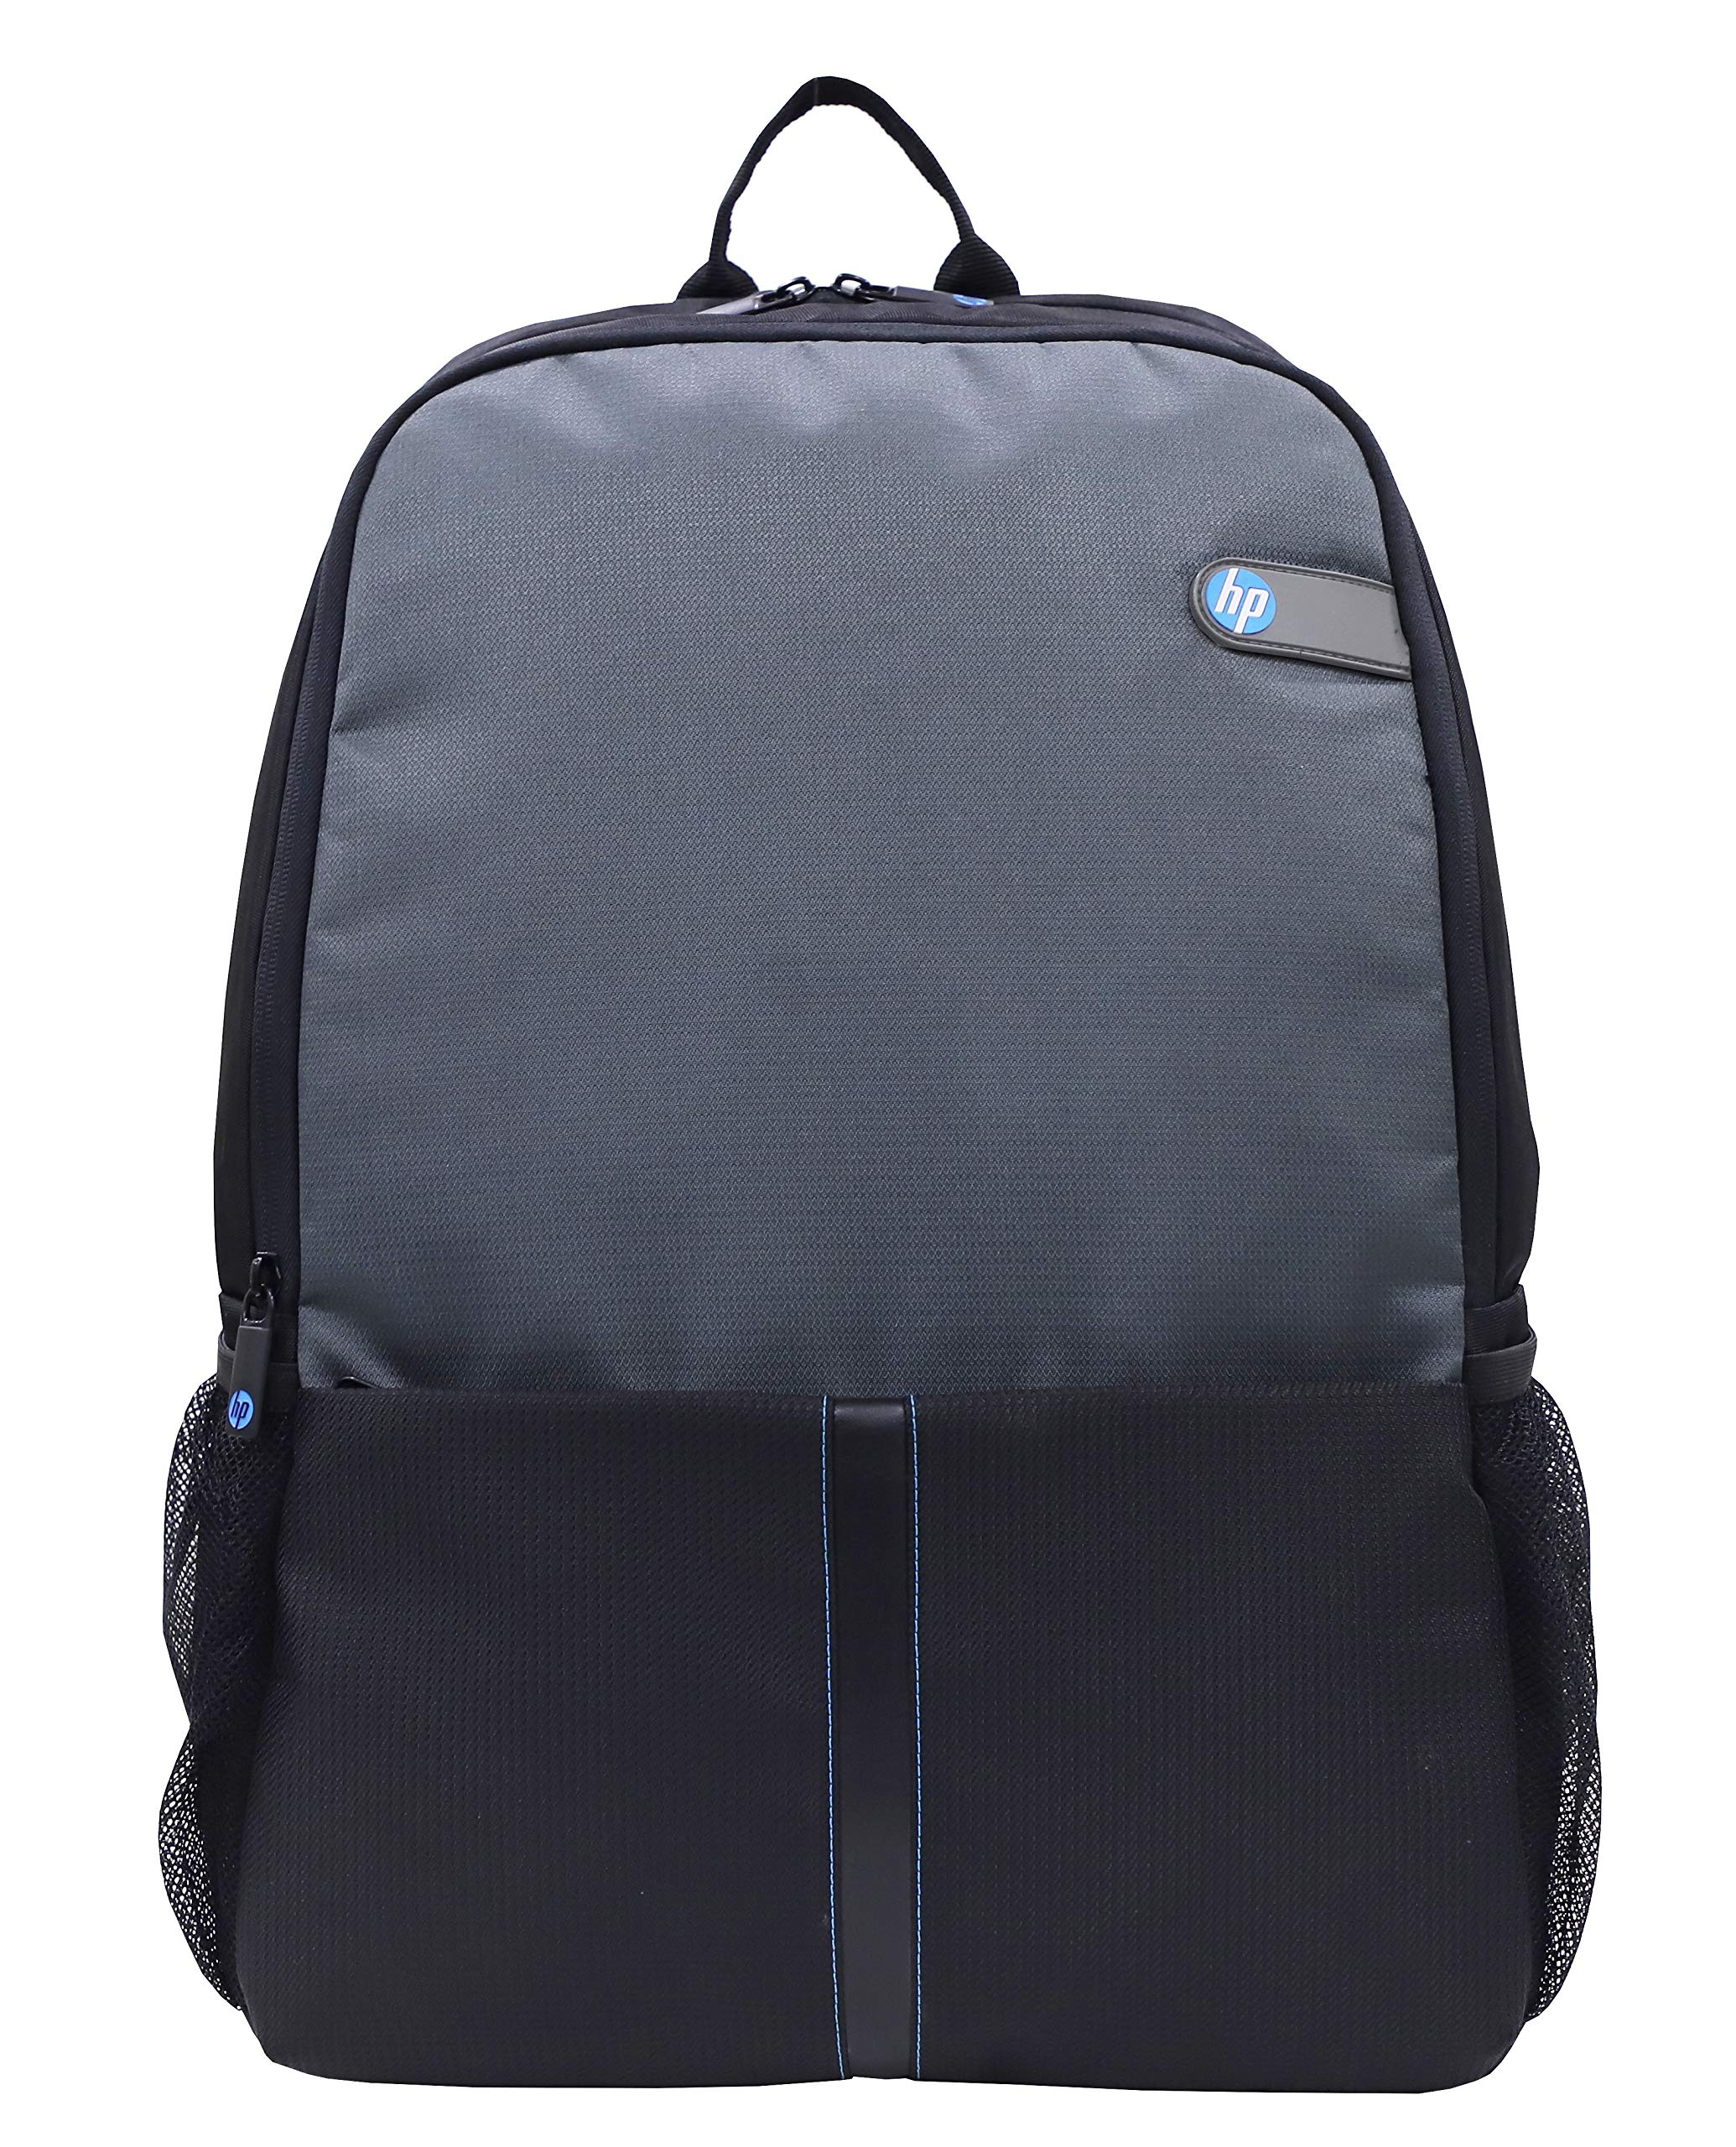 HP Express 27 ltrs 15.6-inch Laptop Backpack (Black) product image